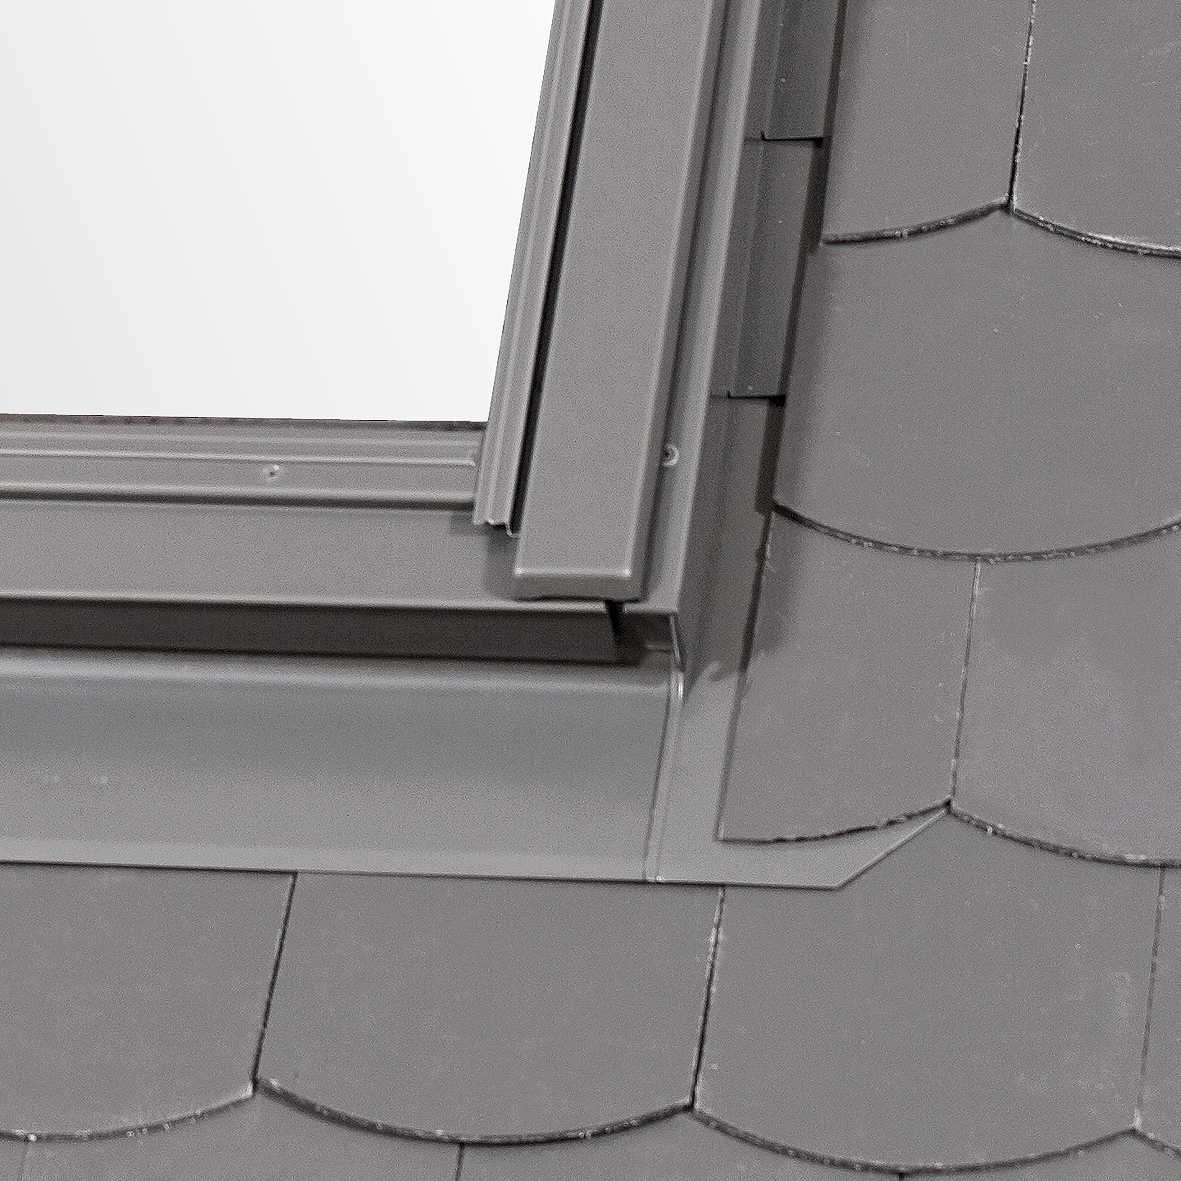 Slate flashing to protect from leaks